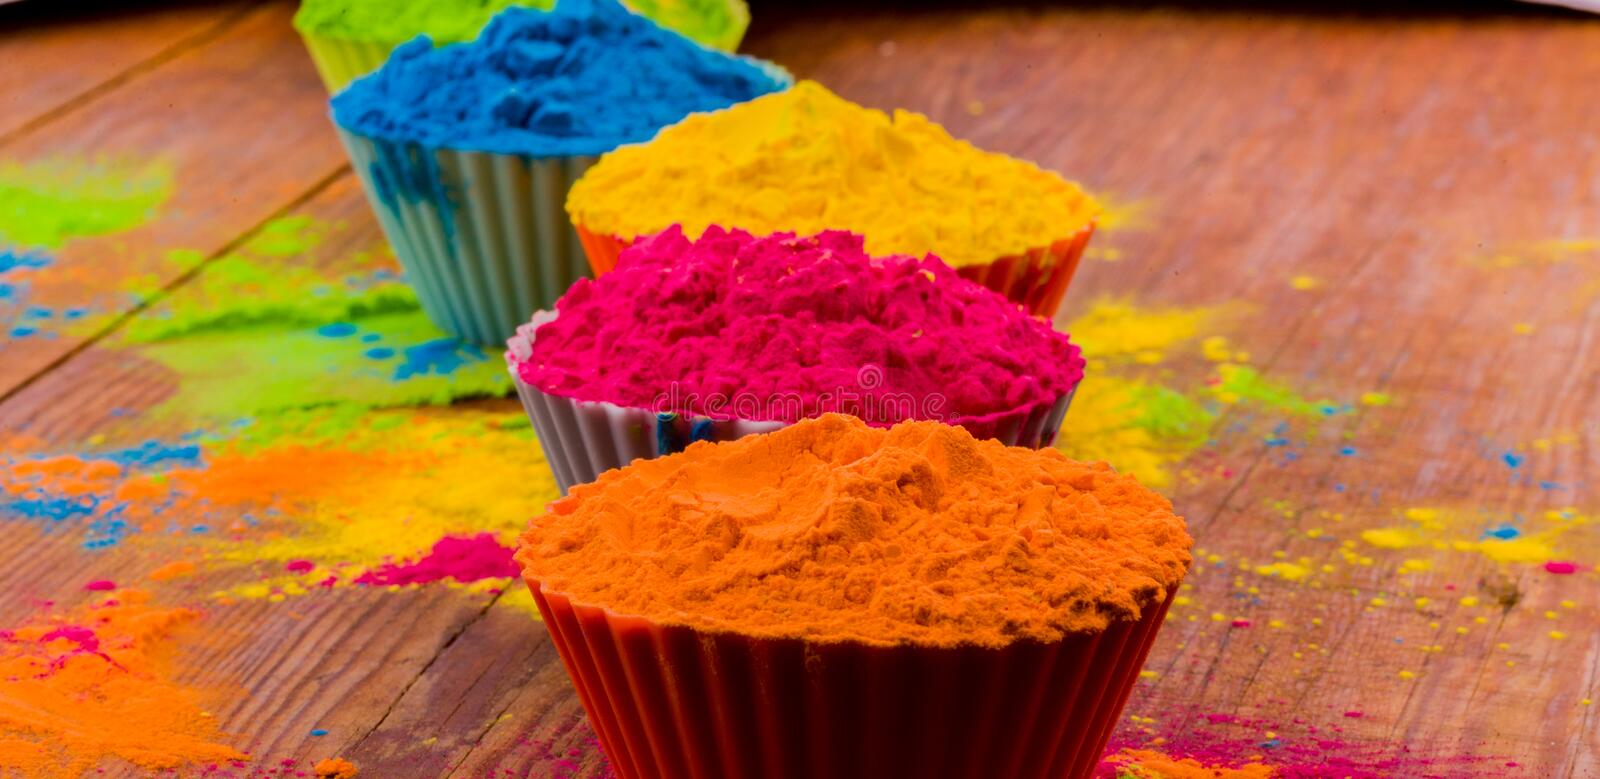 Happy Holi greeting card designed showing Indian traditional sweet and salty food, flowers and powder colours arranged over white royalty free stock photography